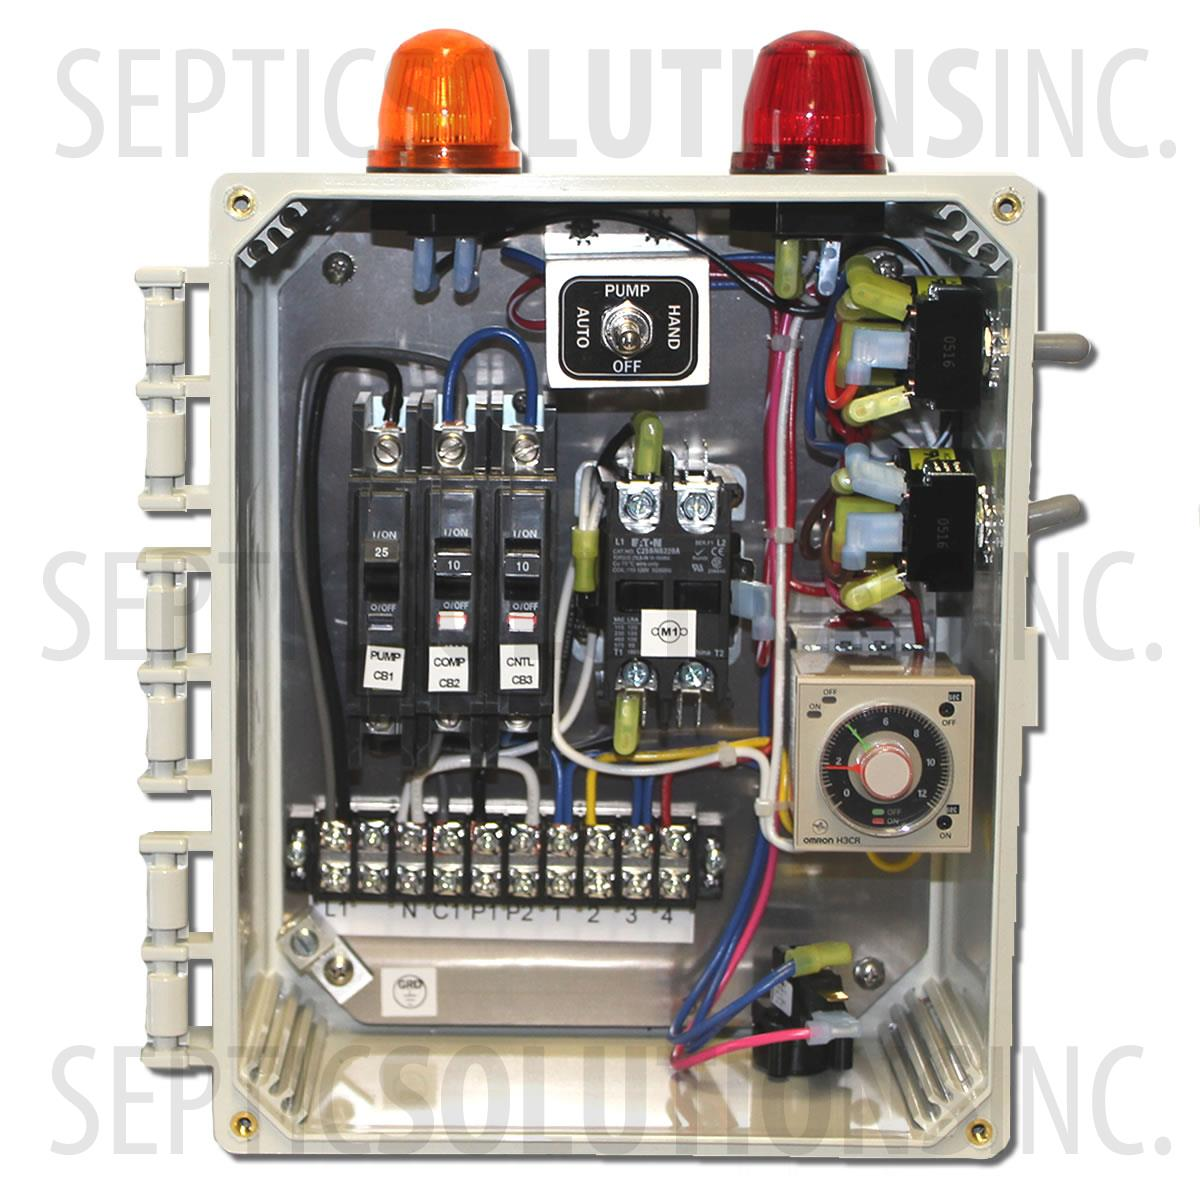 Wiring Septic Dosing Tank Building A Diagram Control Alarm Aerobic Time System Panels And Alarms 750 Gallon